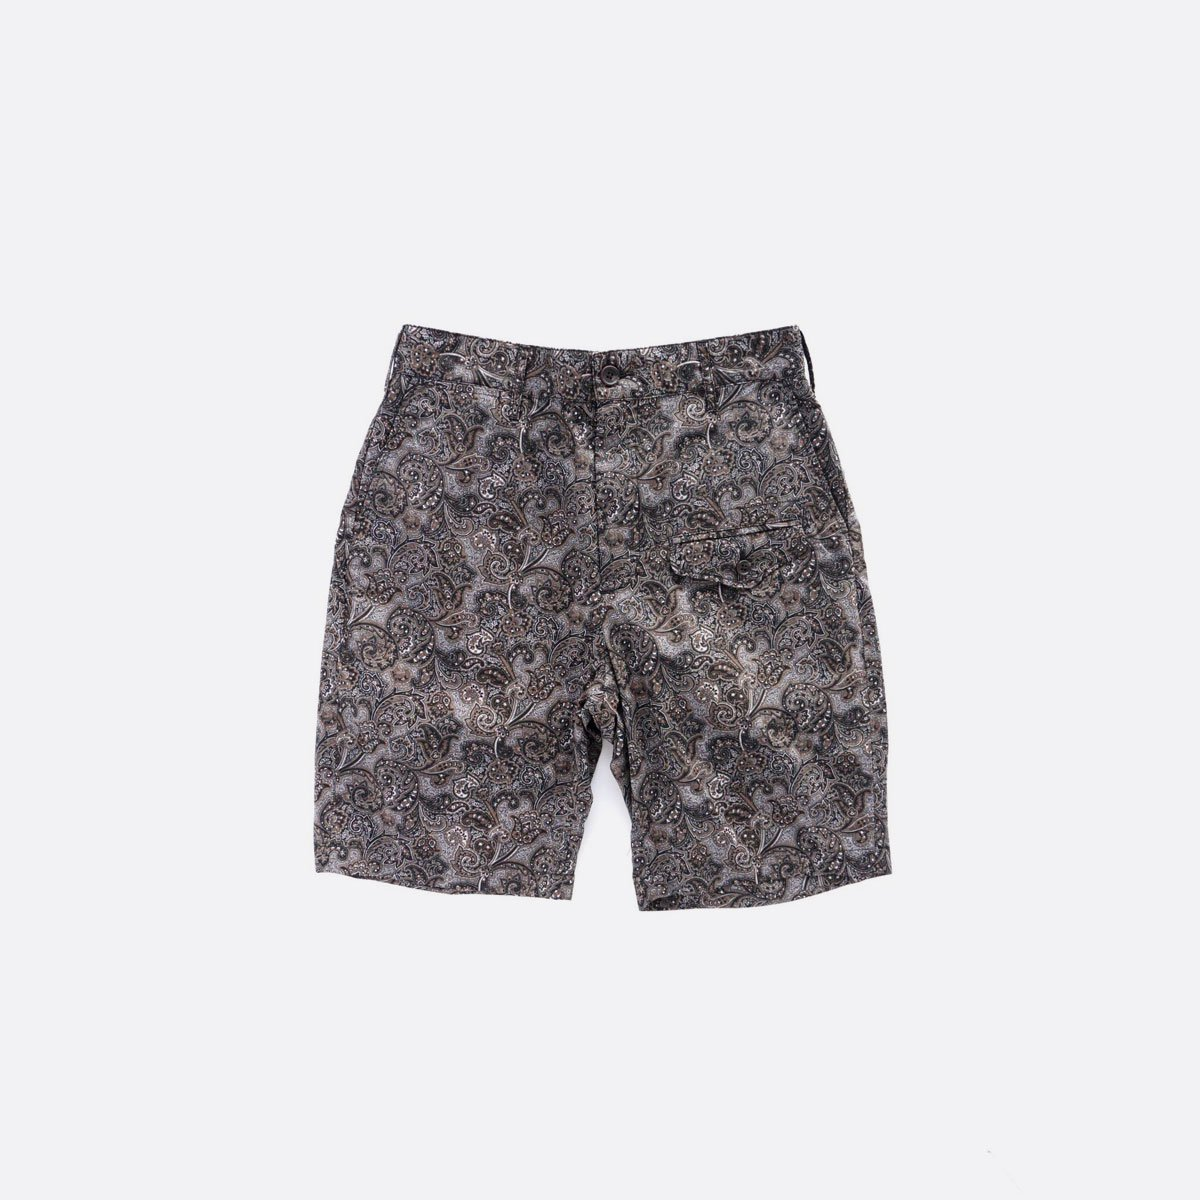 Engineered Garments  Ghurka Short - Paisley Print  (Black/Brown)